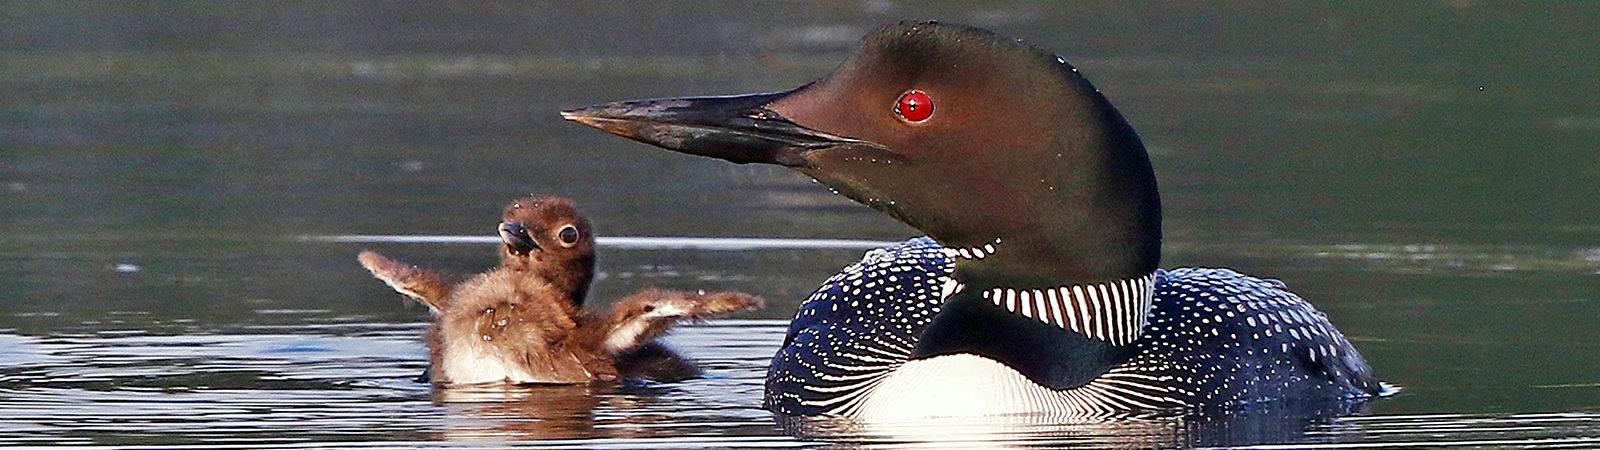 Phot0 by Brad Thompson. 2021 loonwatch winning photo of loon and chick.